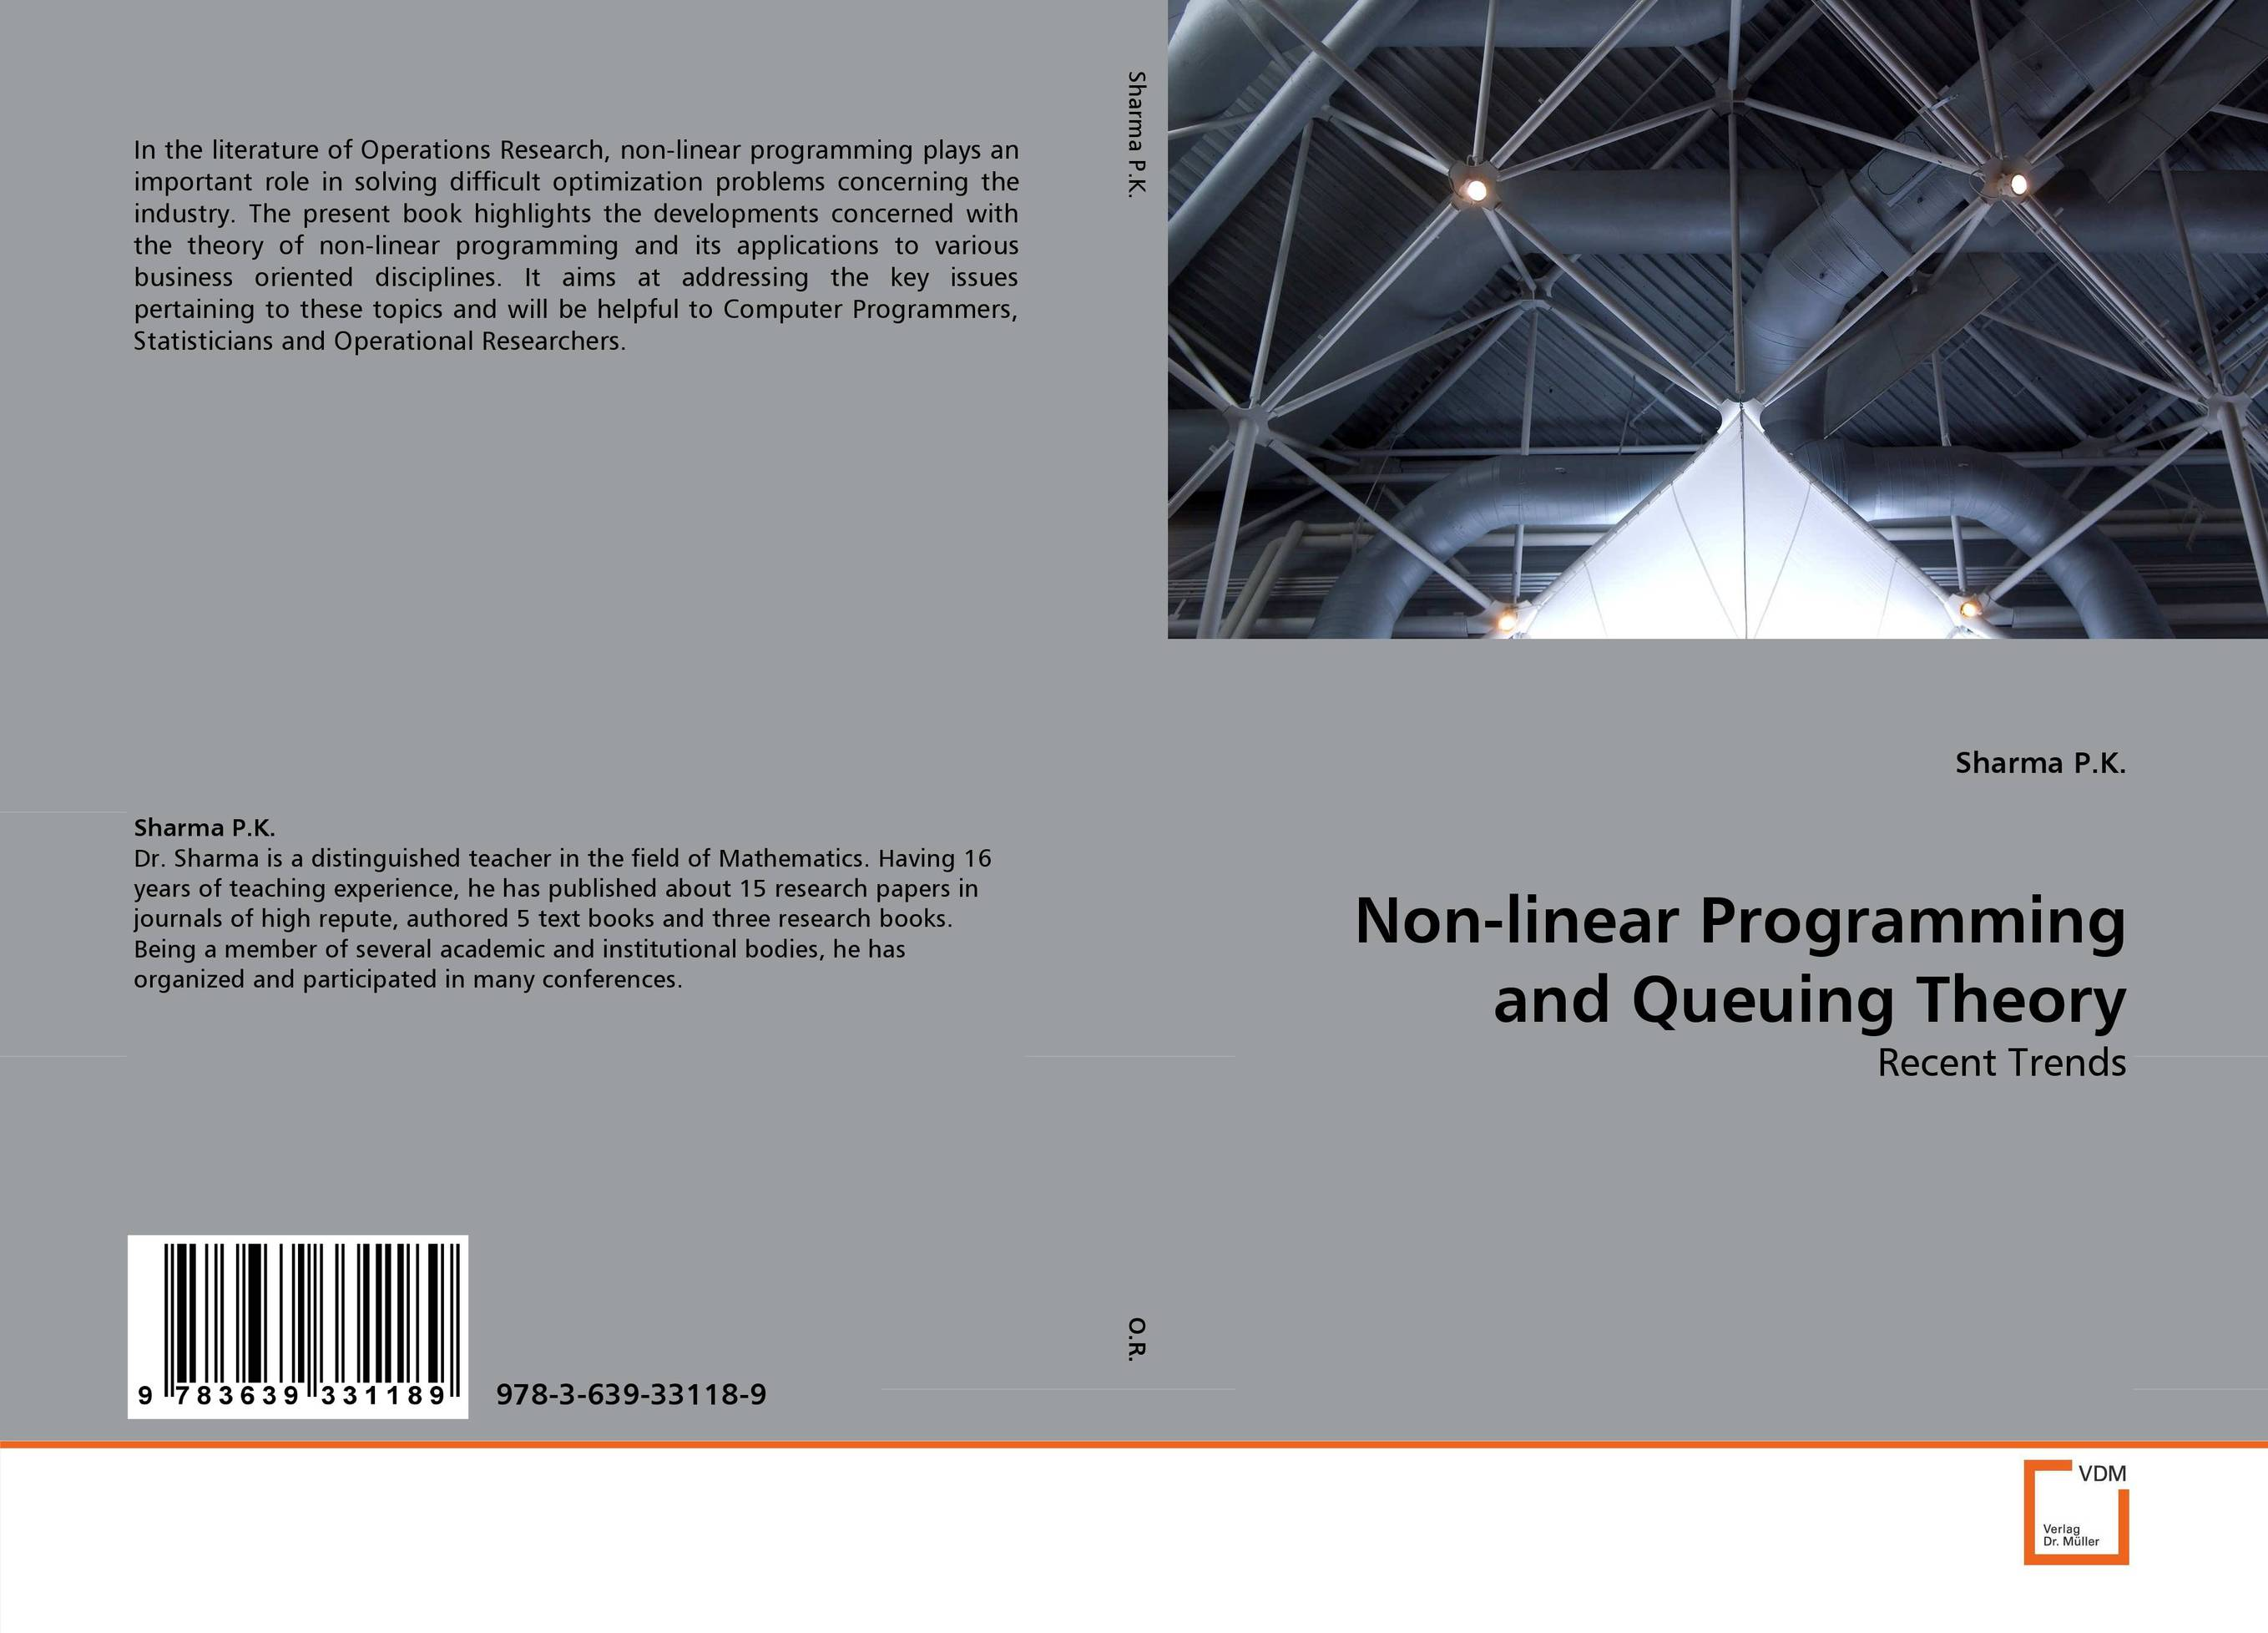 Non-linear Programming and Queuing Theory